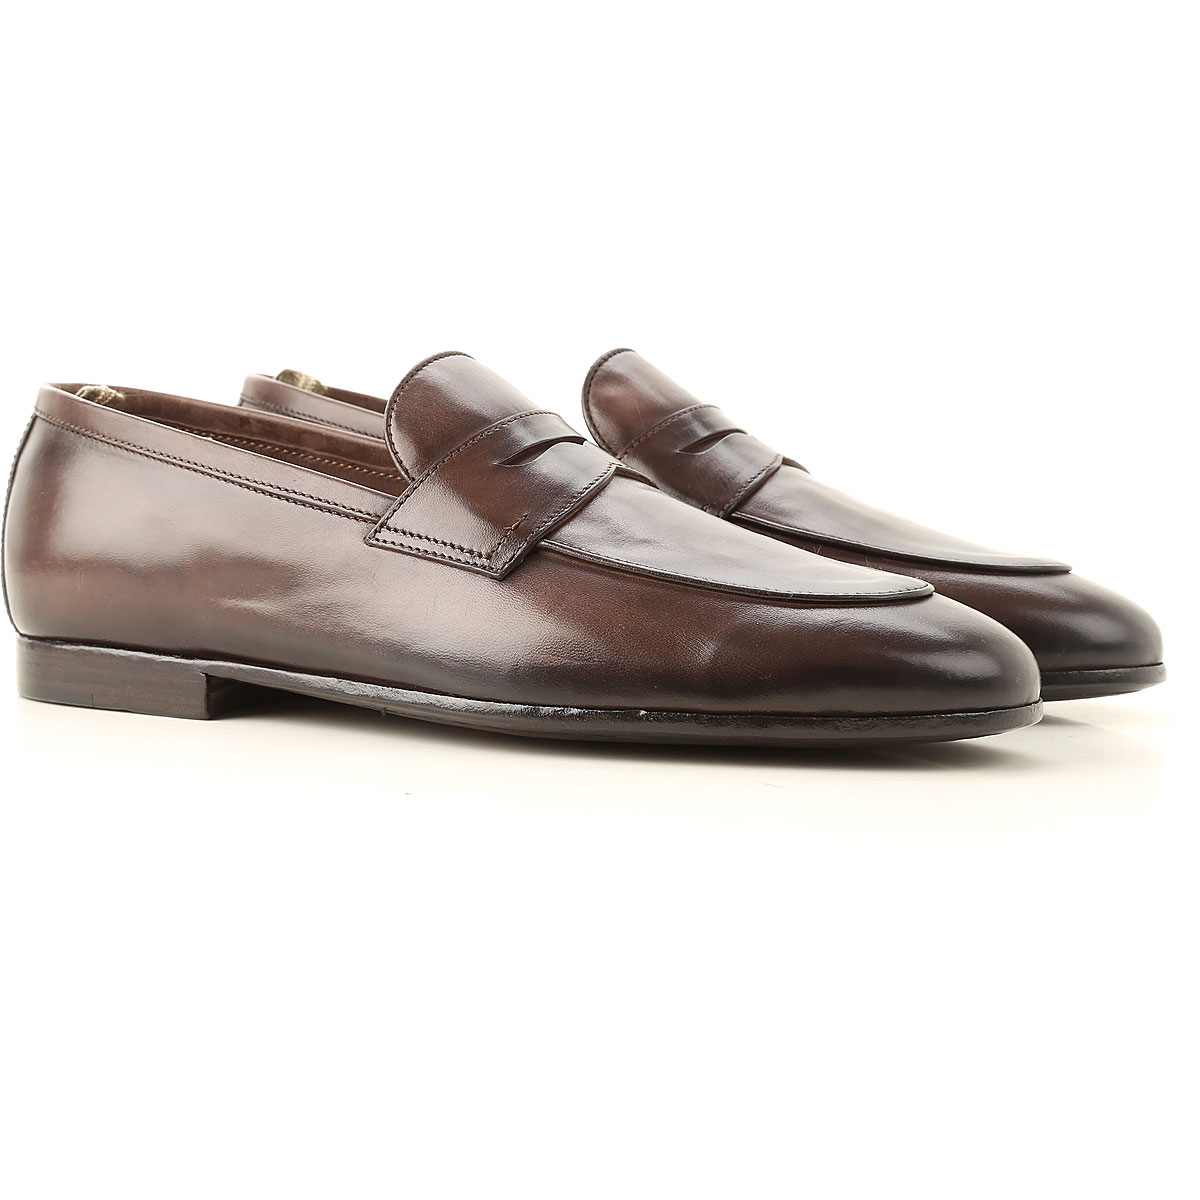 Officine Creative Loafers for Men On Sale, Dark Brown, Leather, 2019, 10 10.5 11 7 7.5 7.75 8 8.5 9 9.5